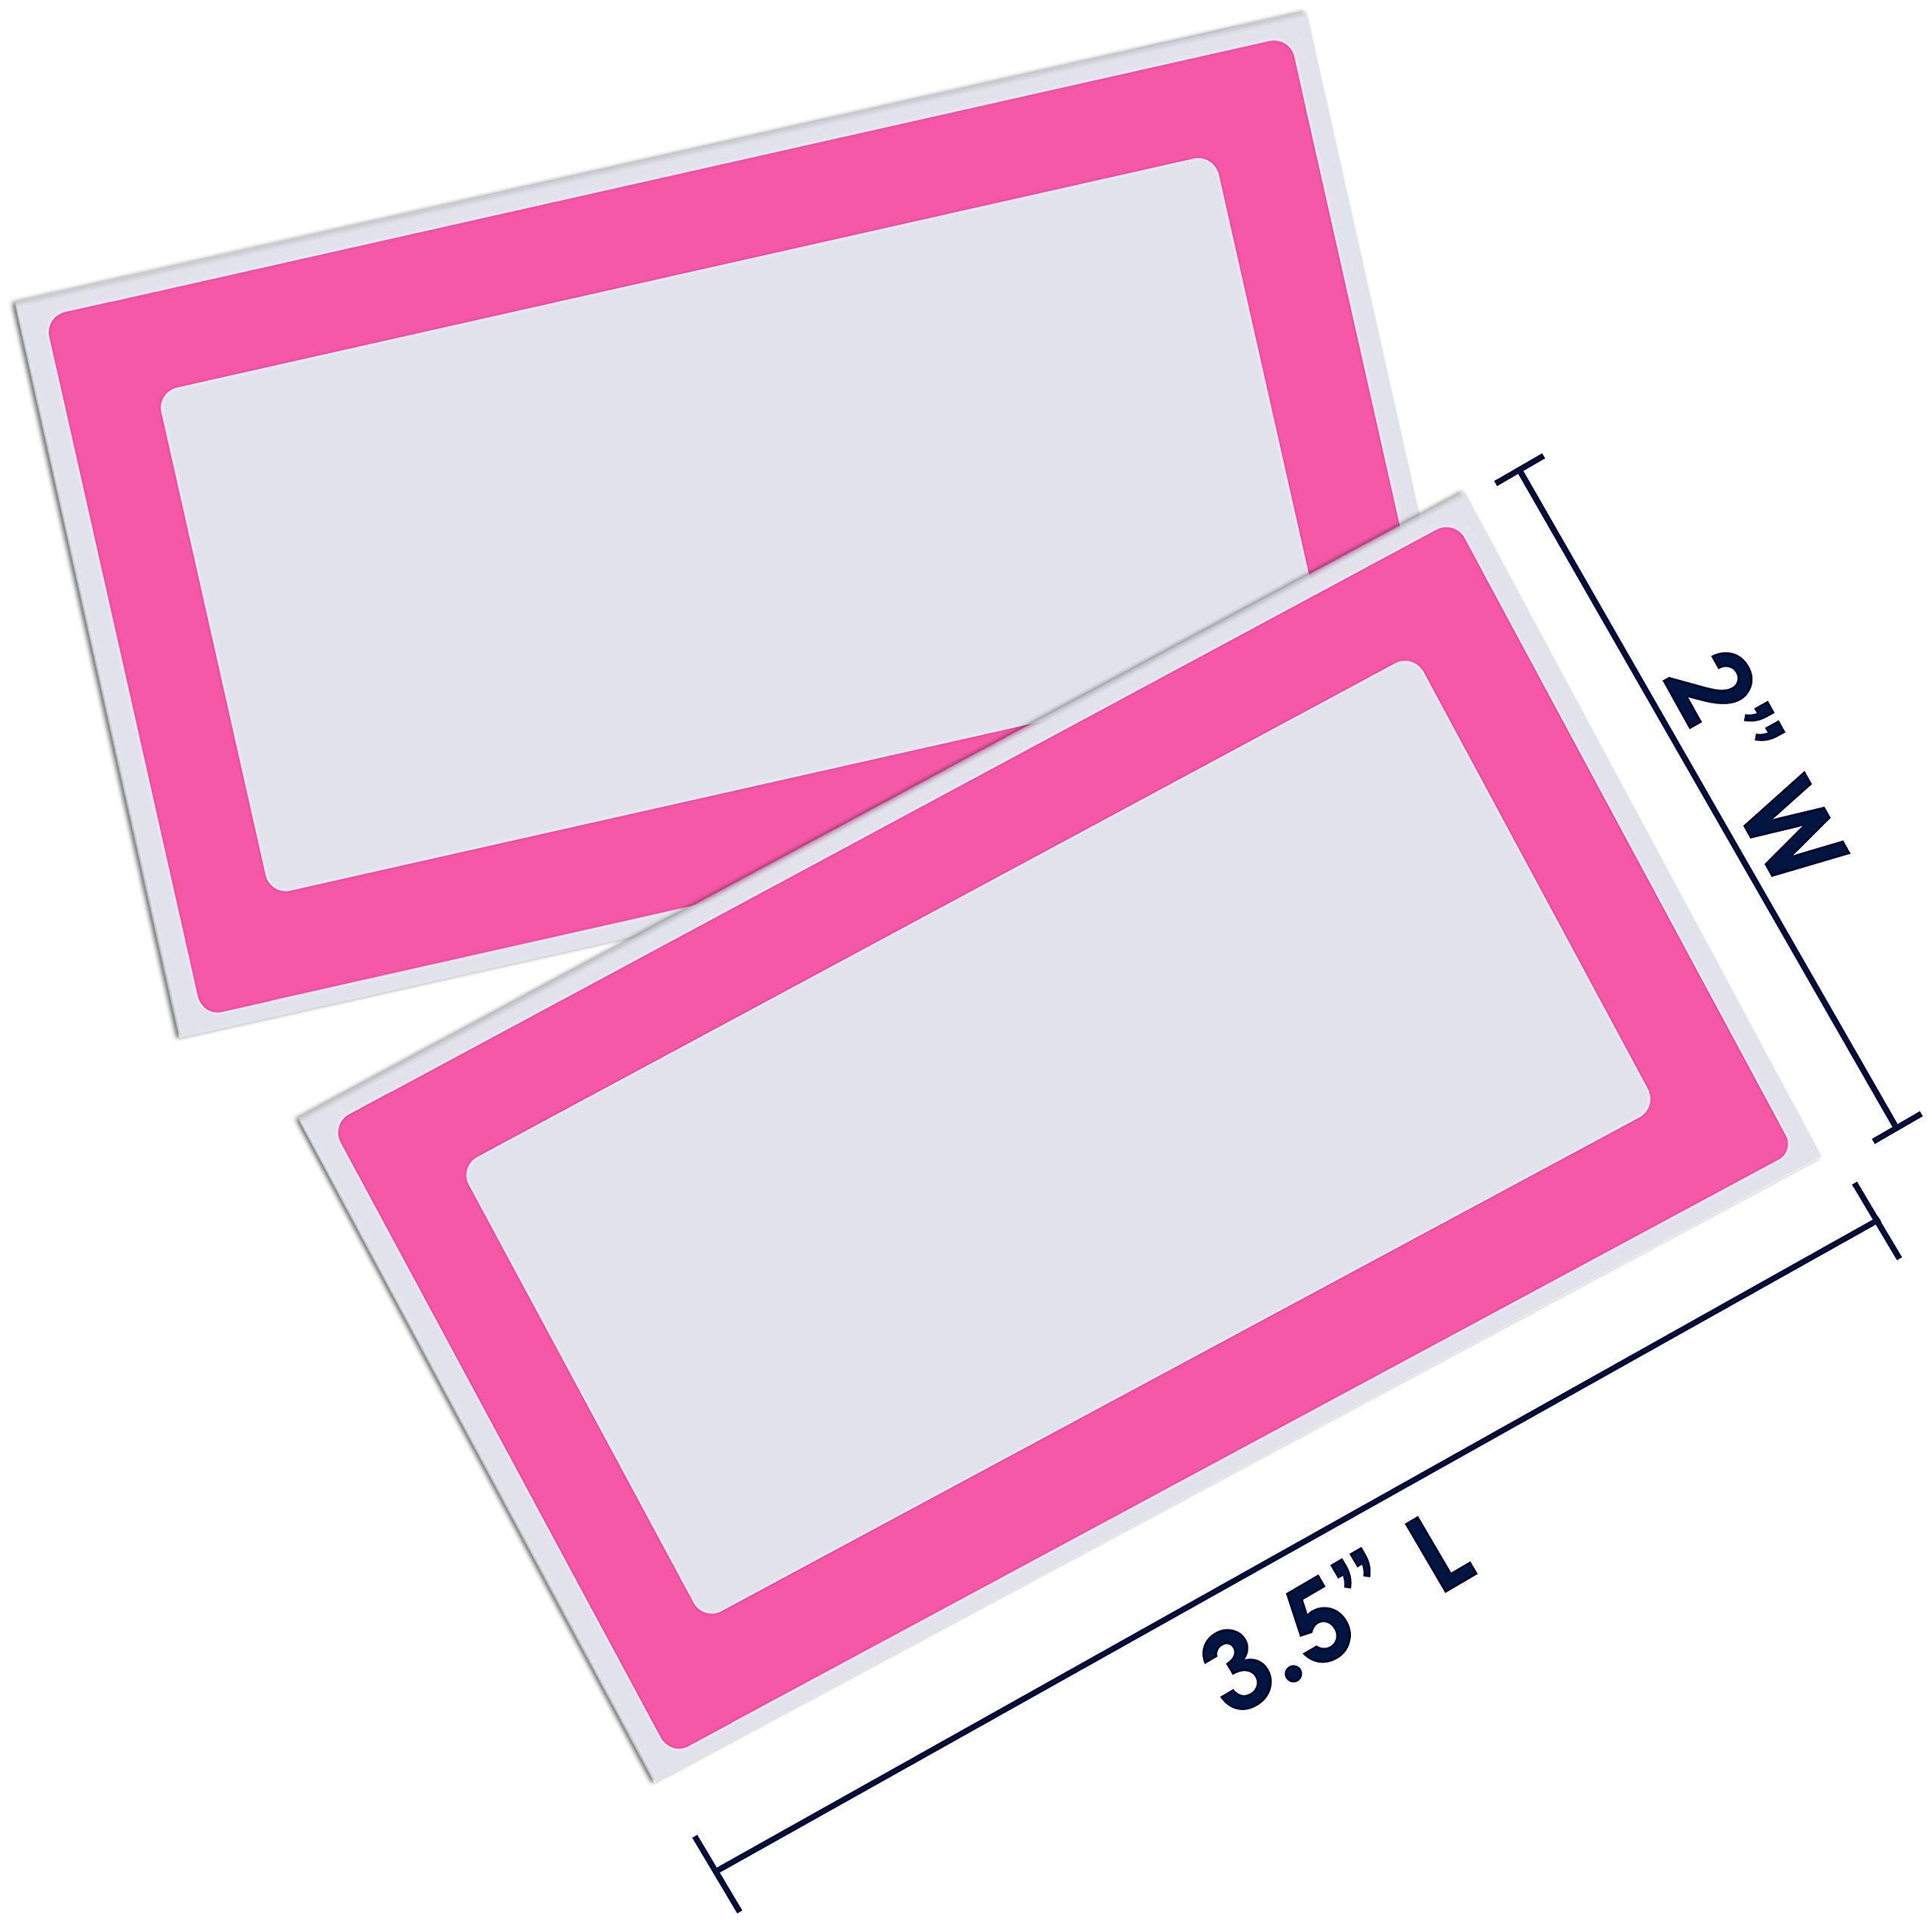 Colorful Plain Name Tag Labels - 2 Rolls 500 Stickers in Total - 3.5 x 2 inches - Nametags for Jars, Bottles, Food Containers, Folders, Birthday Parties and Kids Clothes (Pink/Pink 2 Pack) by Navy Penguin (Image #2)